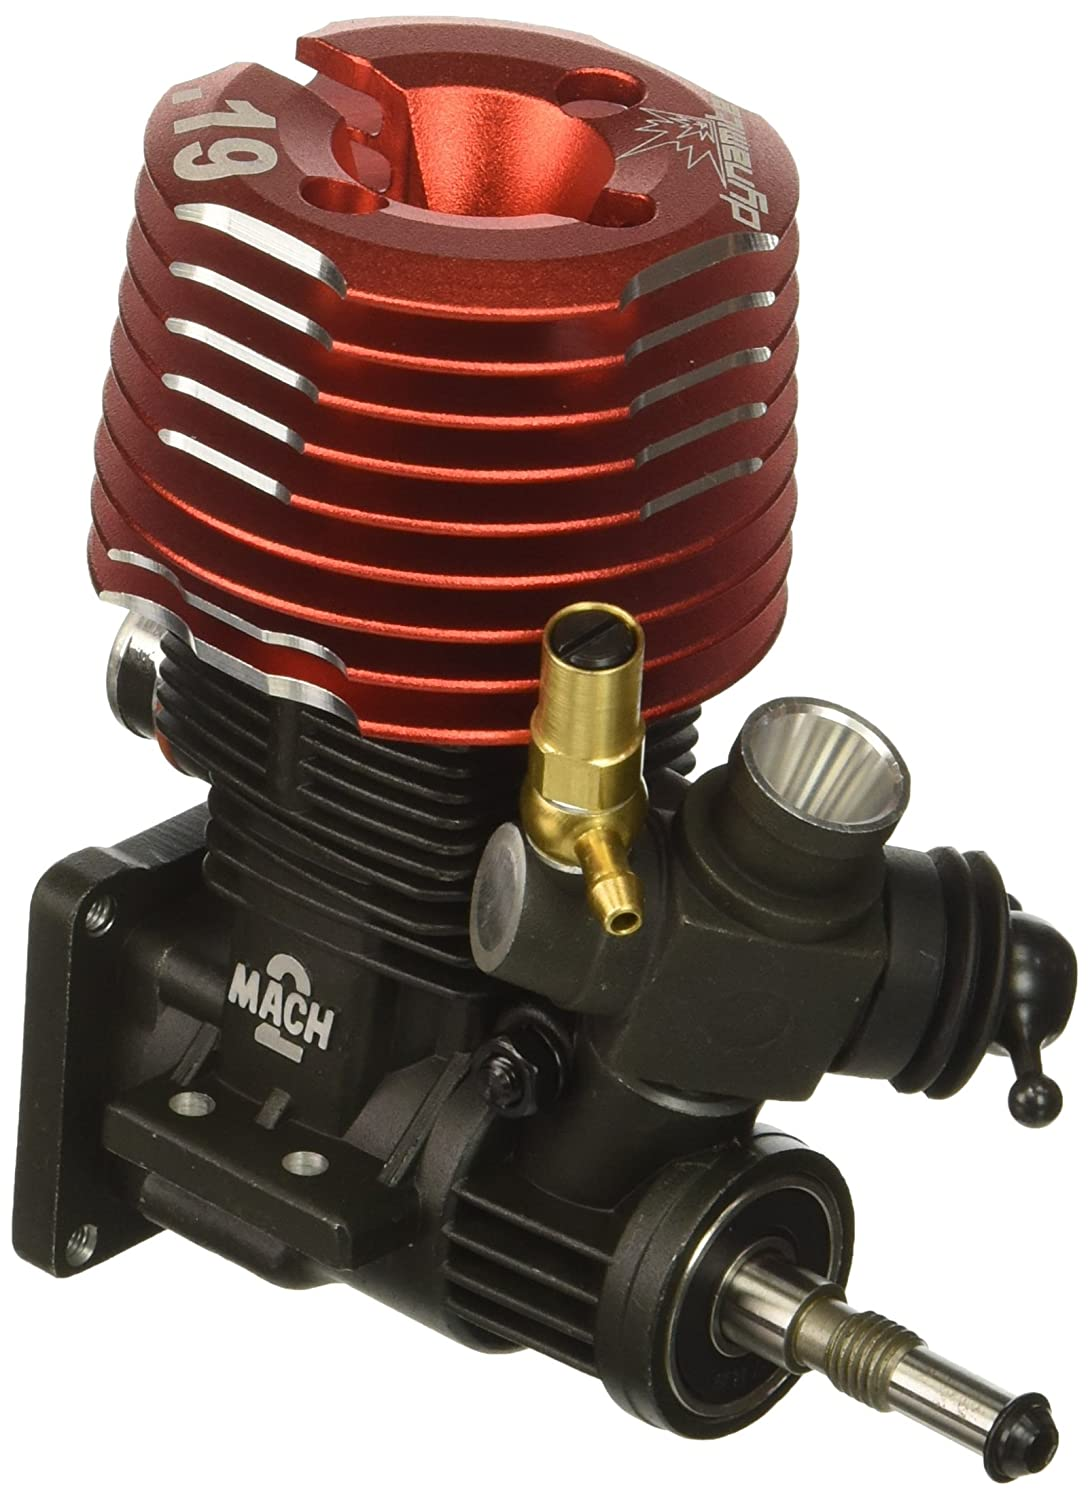 Dynamite Mach 2 .19T Replacement Engine for Traxxas Vehicles